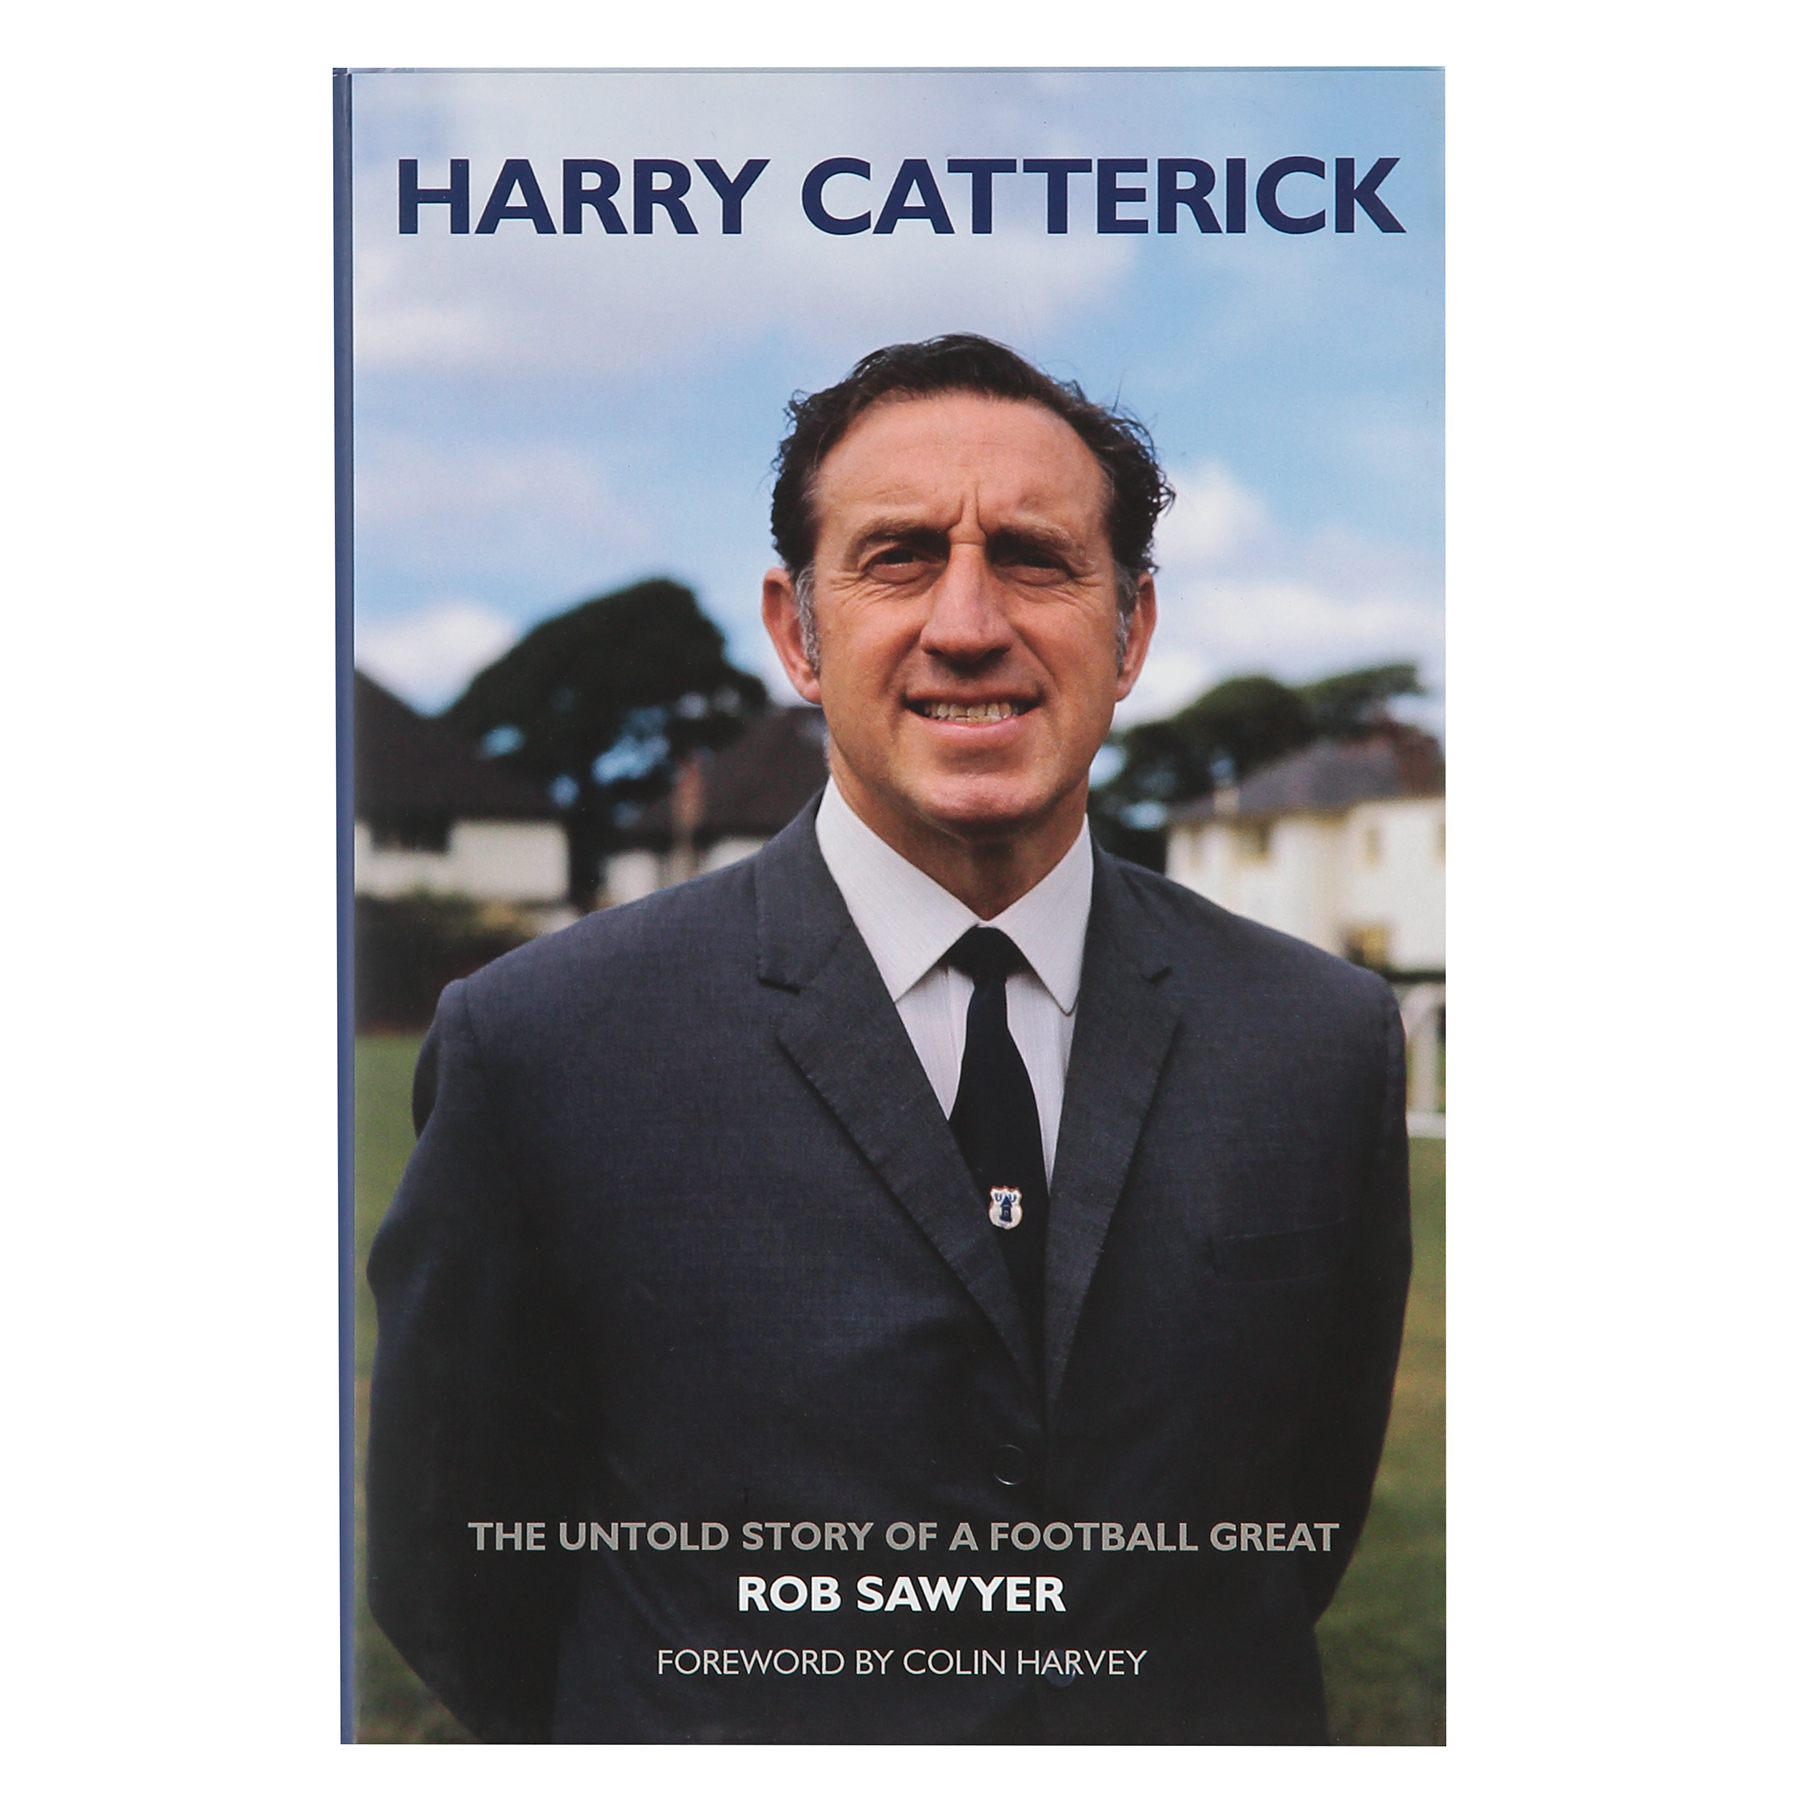 Everton Harry Catterick - The Untold Story of a Football Great